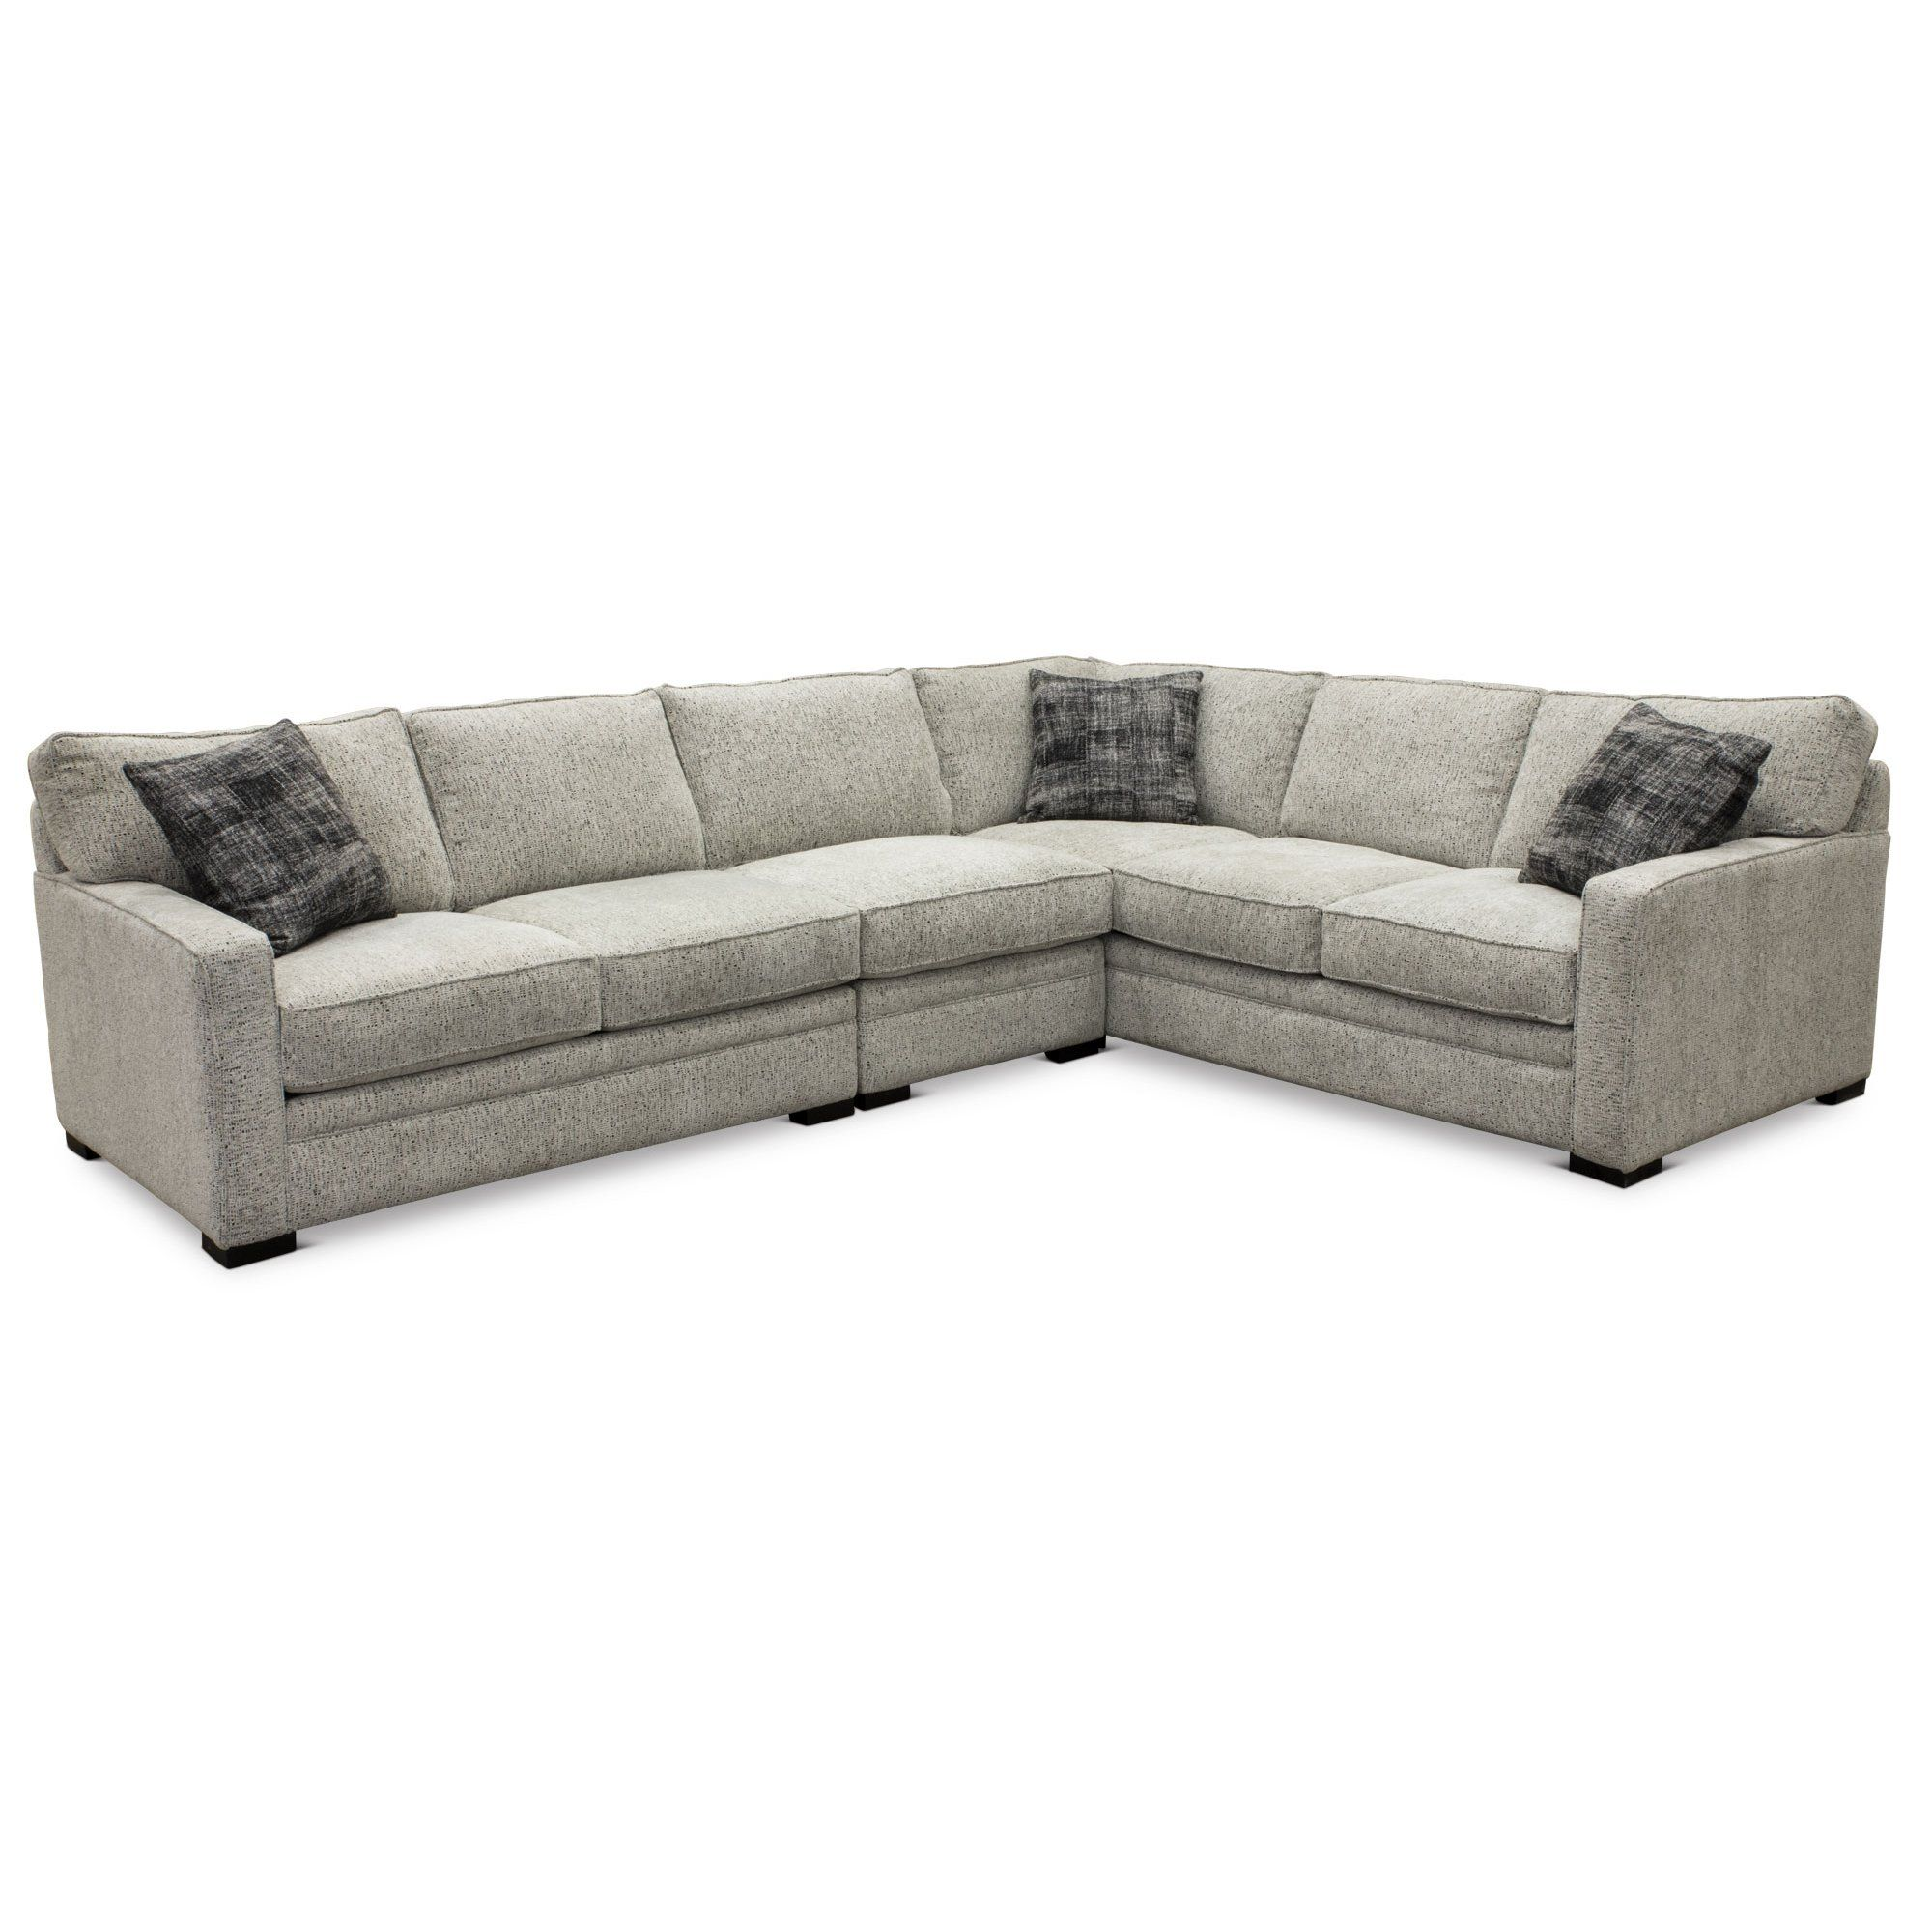 Terrific Contemporary Gray 3 Piece Sectional Sofa With Raf Sofa Andrewgaddart Wooden Chair Designs For Living Room Andrewgaddartcom